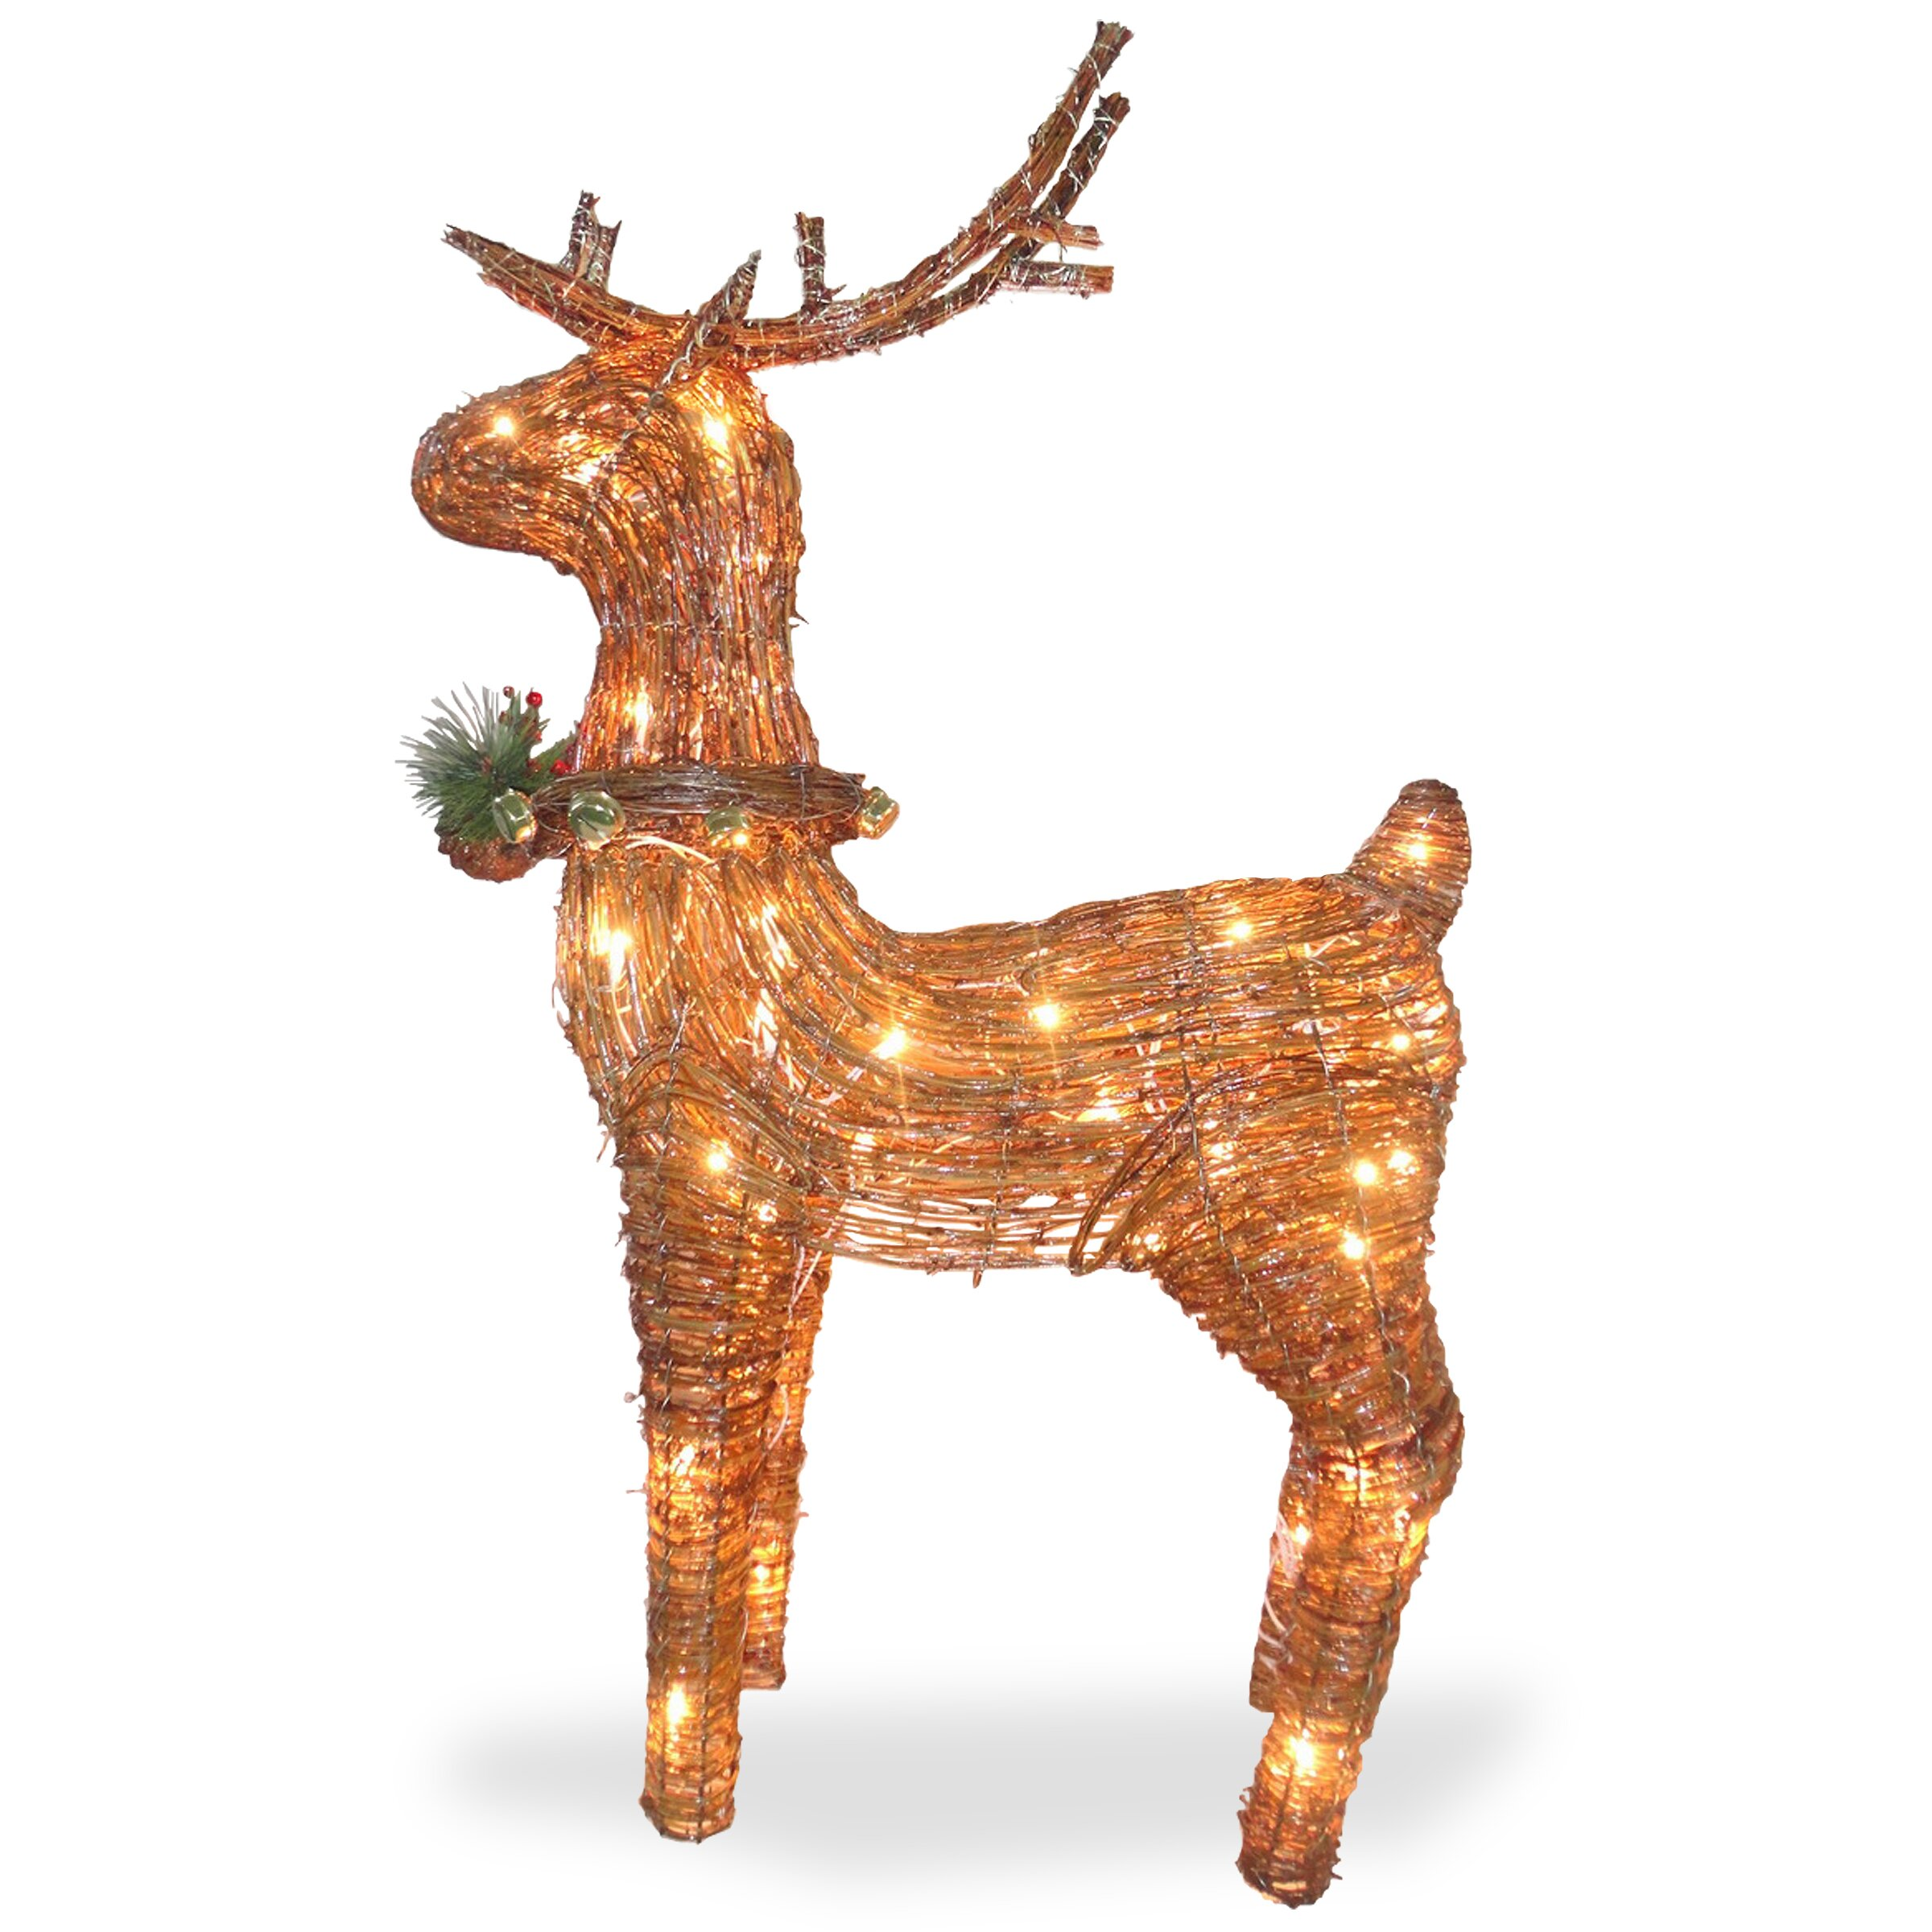 24 cute christmas trees ornaments and other decorations all for - Christmas Reindeer Decorations